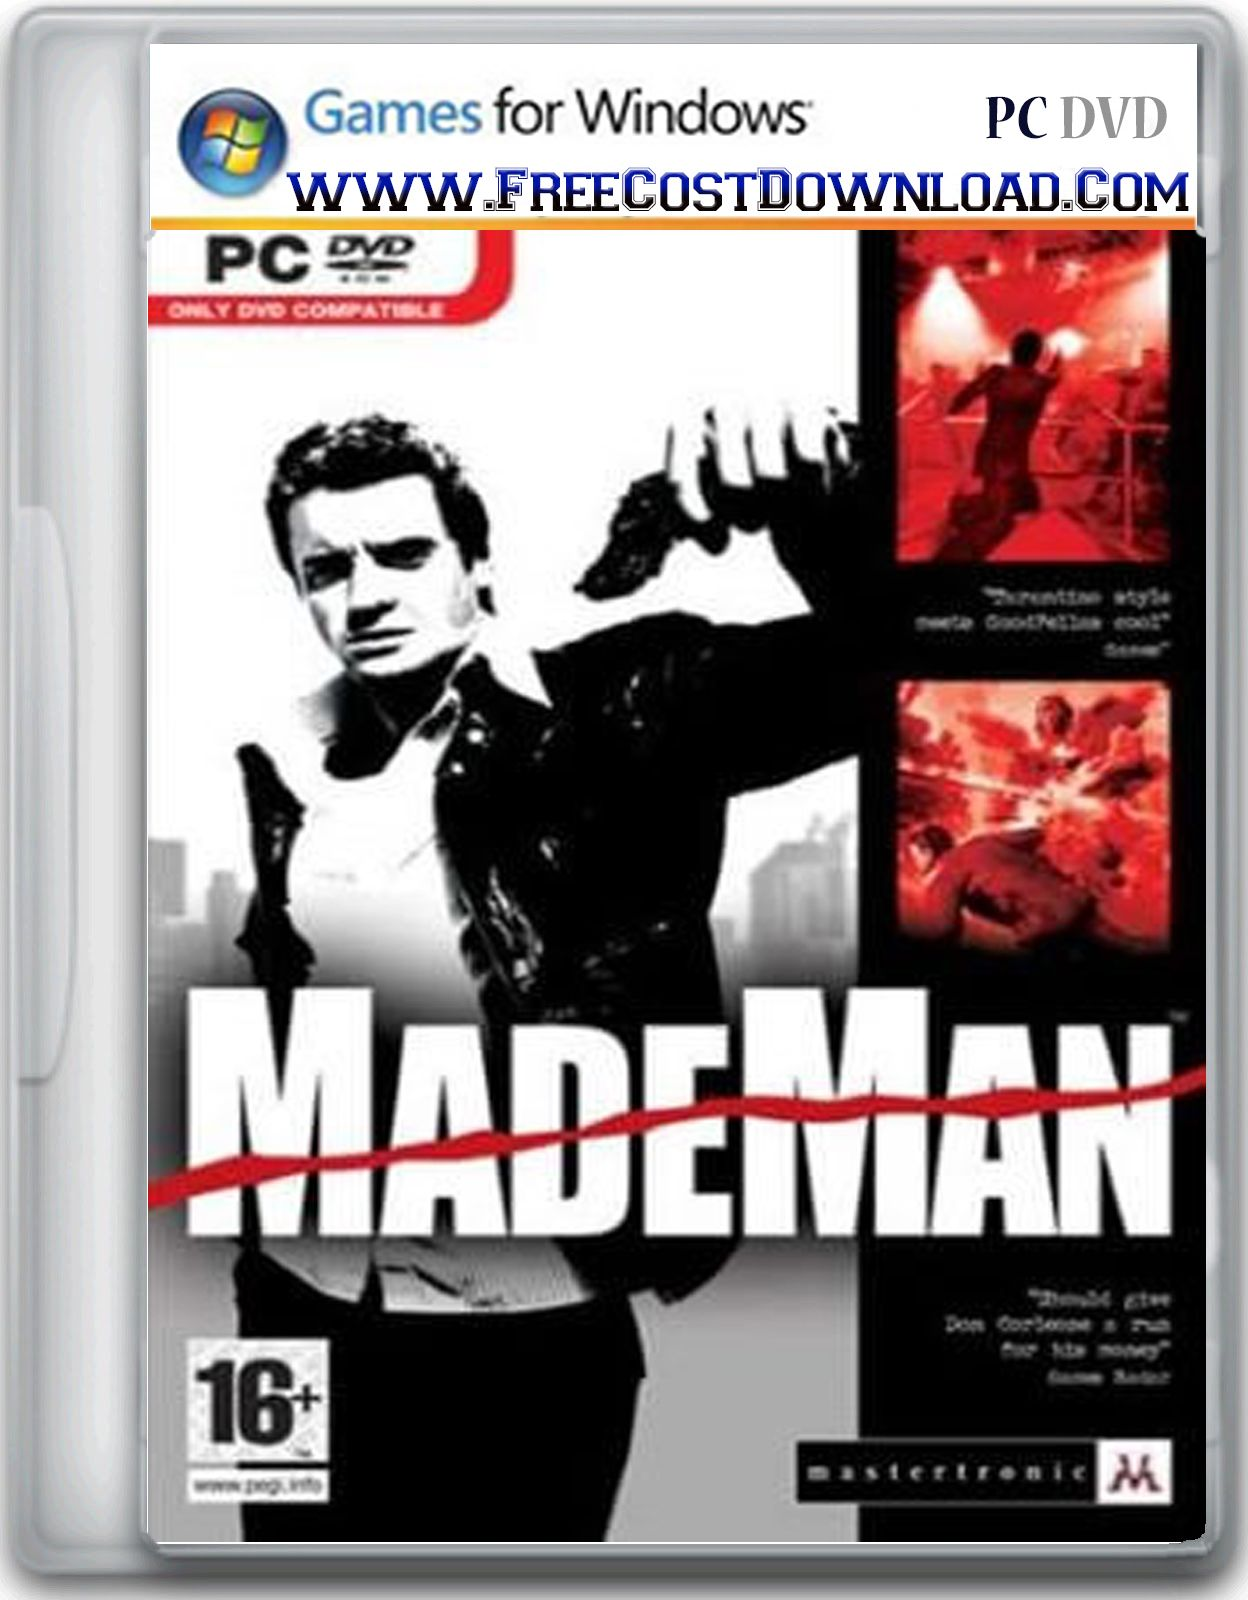 Made Man Game Free Download Mademan Highly Compressed Full Version